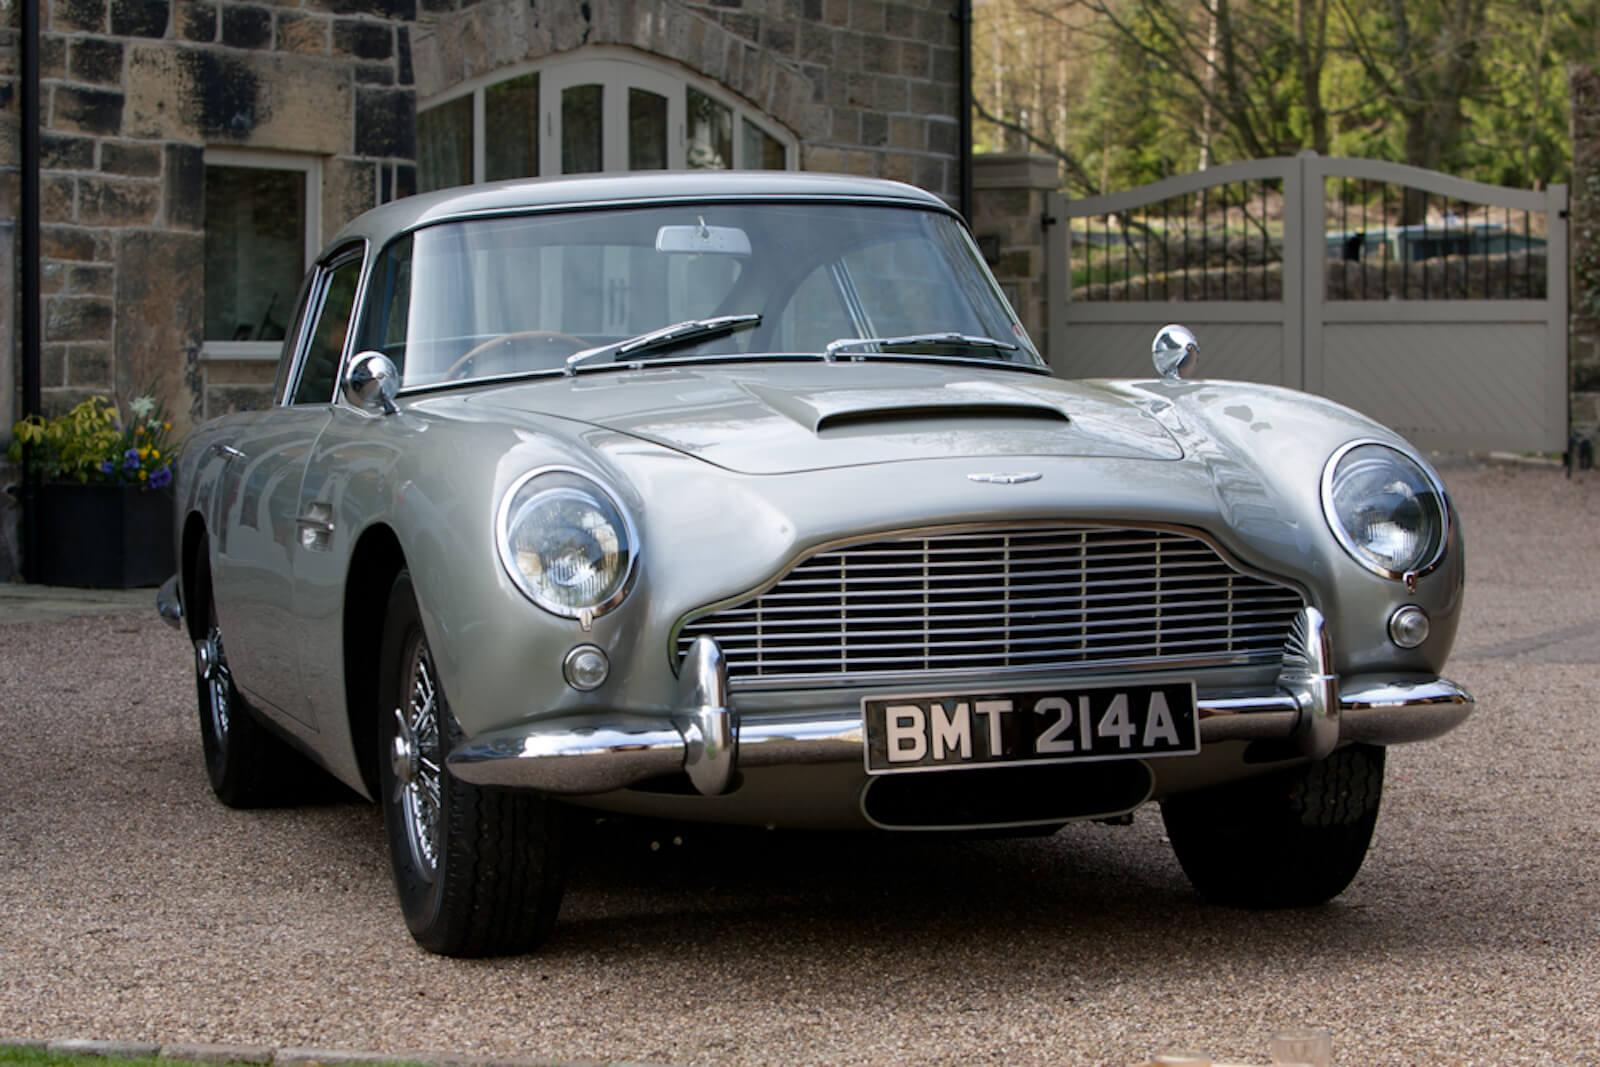 James Bonds Aston Martin DB Heading To Goodwood Auction - Aston martin restoration project for sale